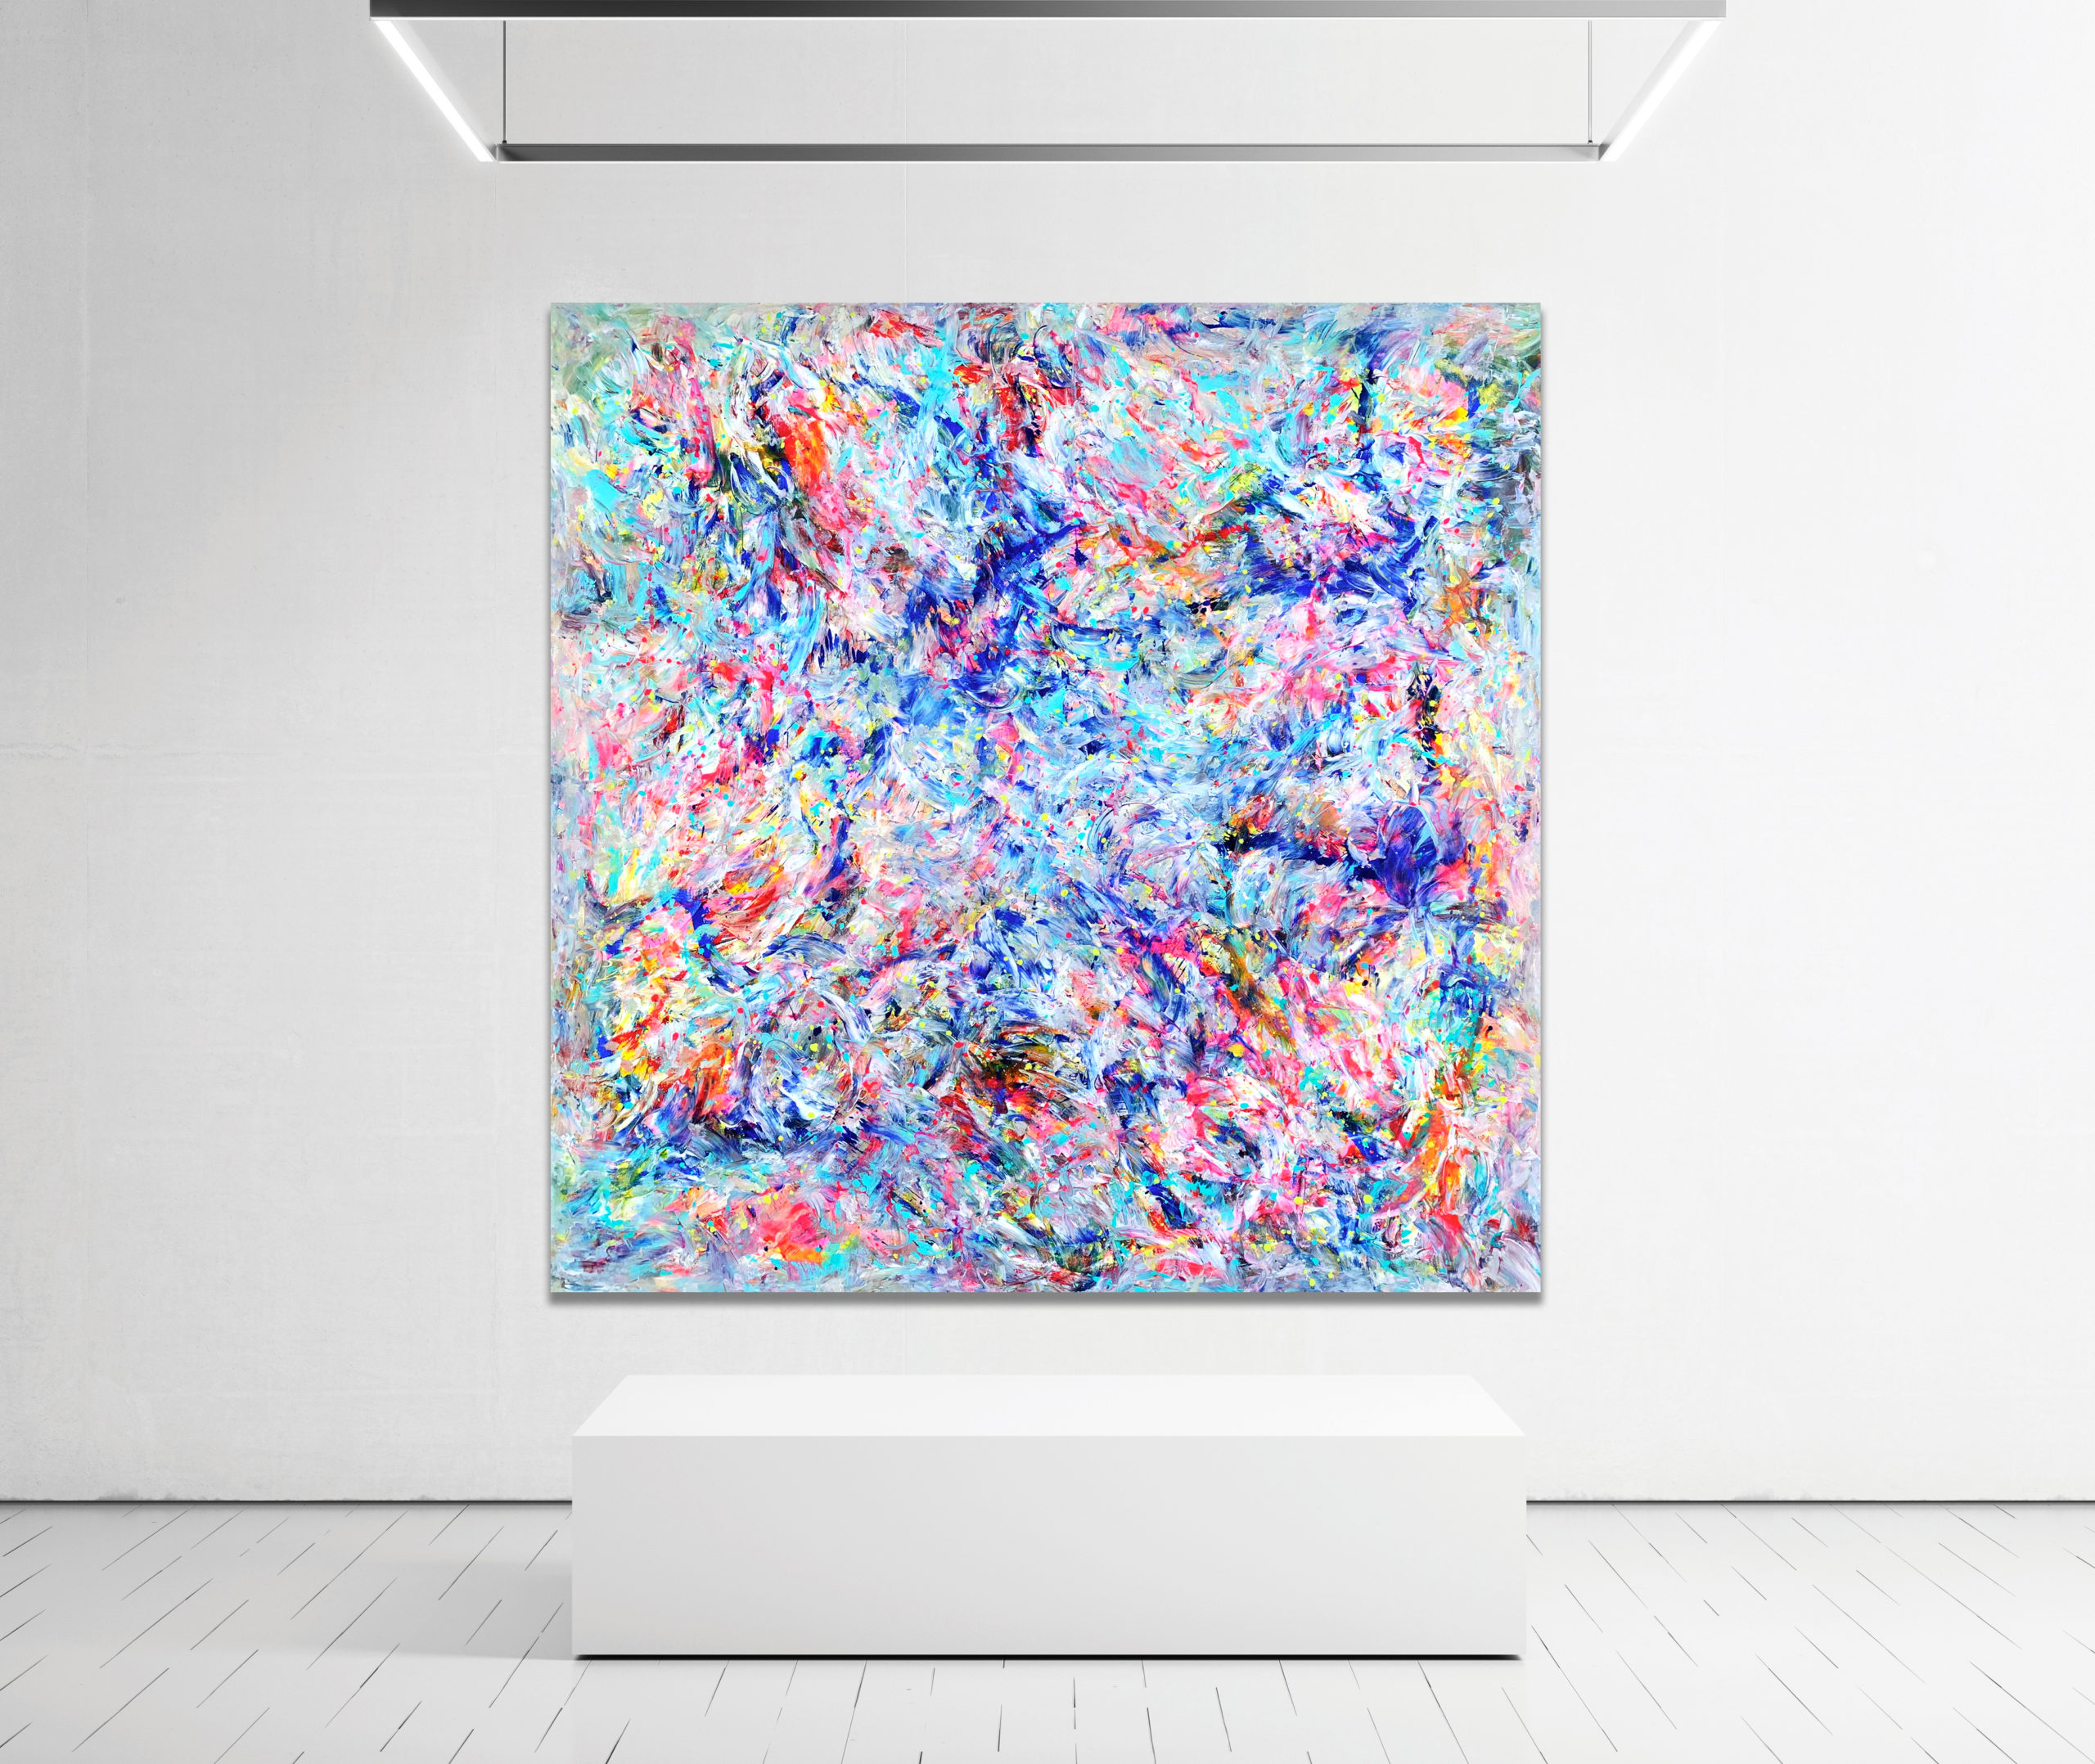 Colour Sanctuary - Abstract Expressionism by Estelle Asmodelle